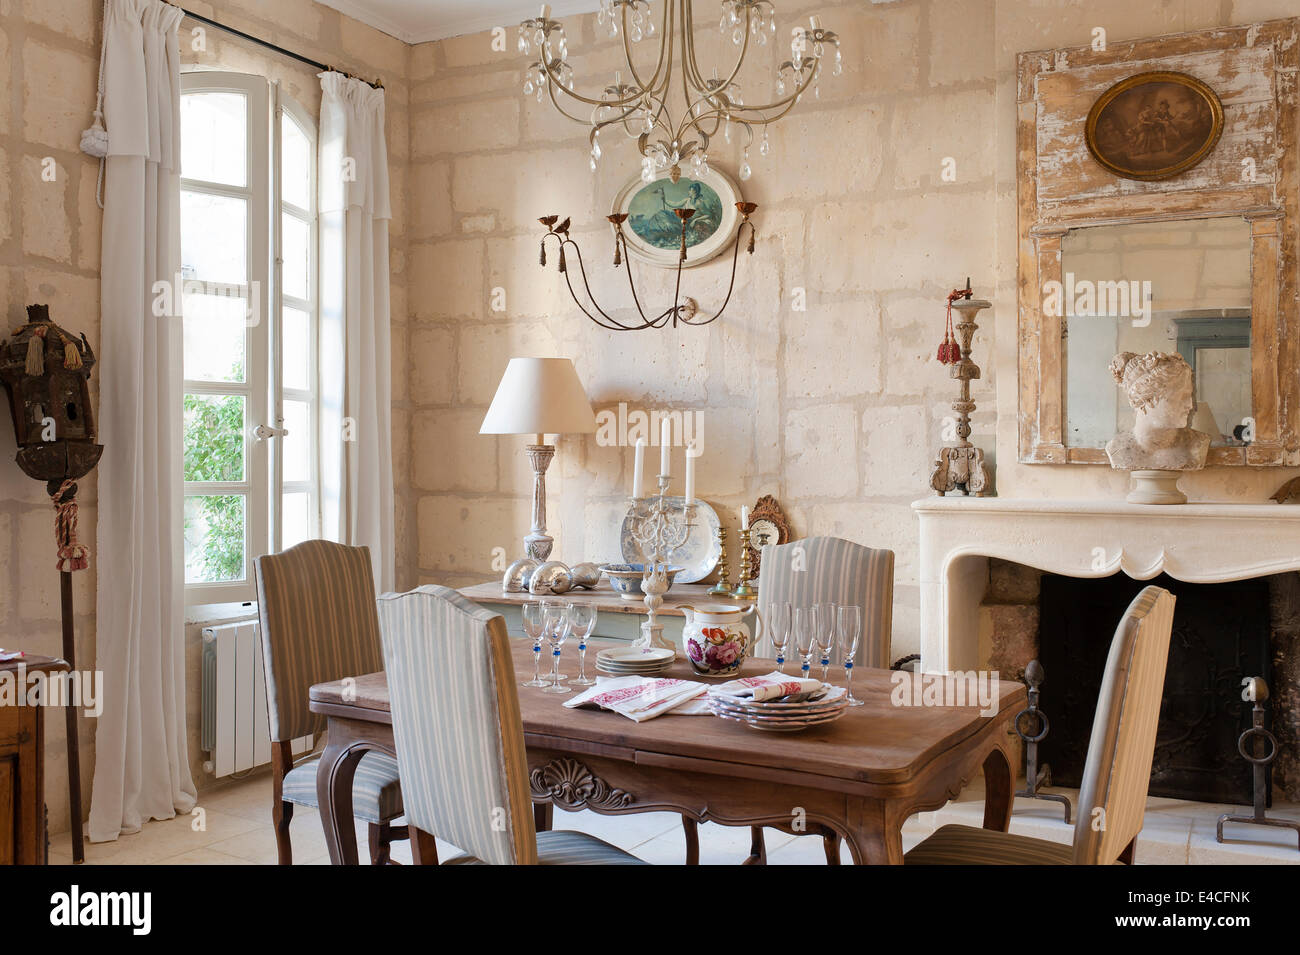 Wooden Dining Table With Upholstered Dining Chairs In Room With Stone  Fireplace And Limestone Block Walls